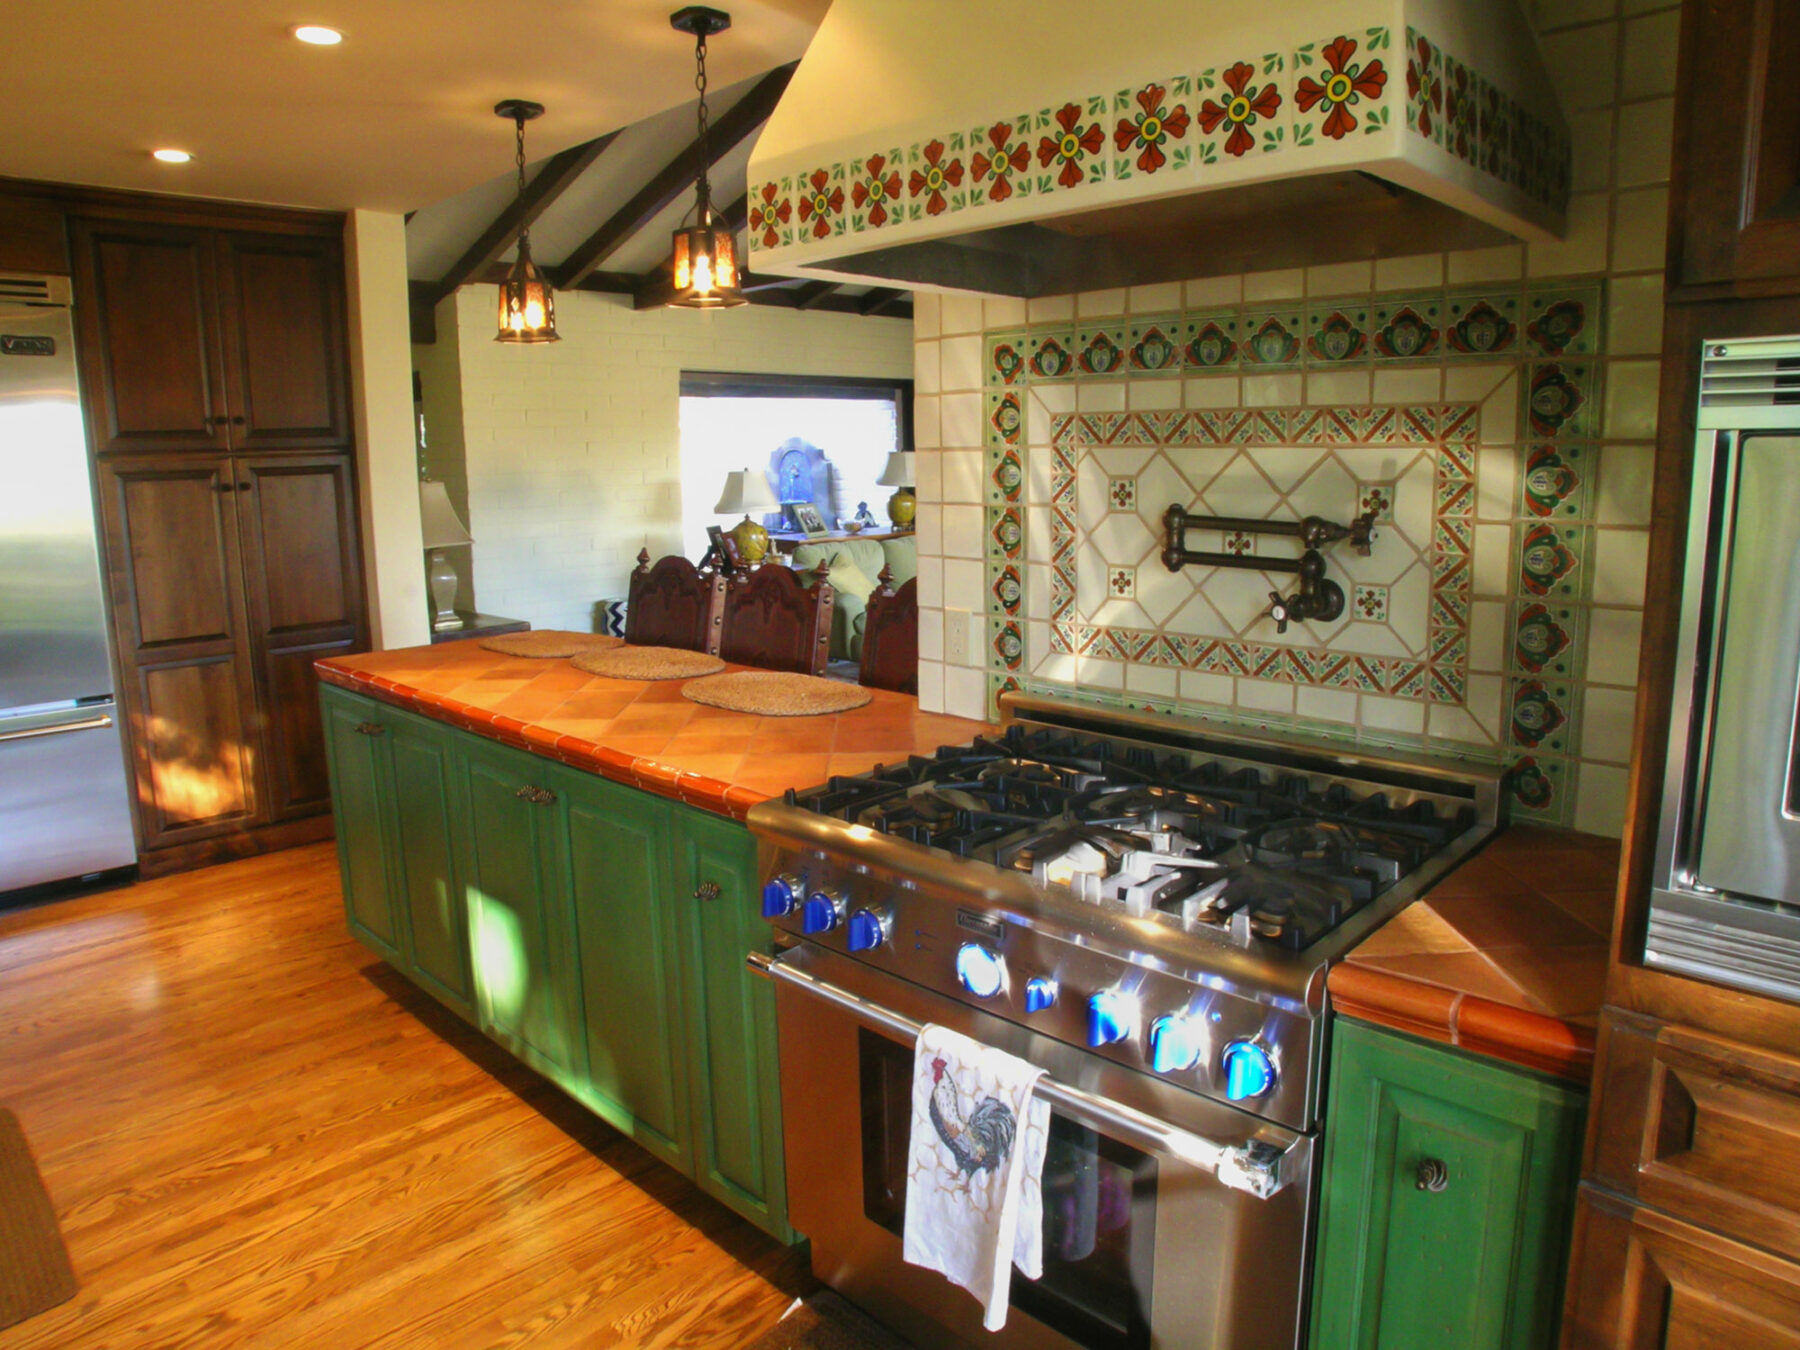 Spanish Style Kitchen Remodel With Period Tile